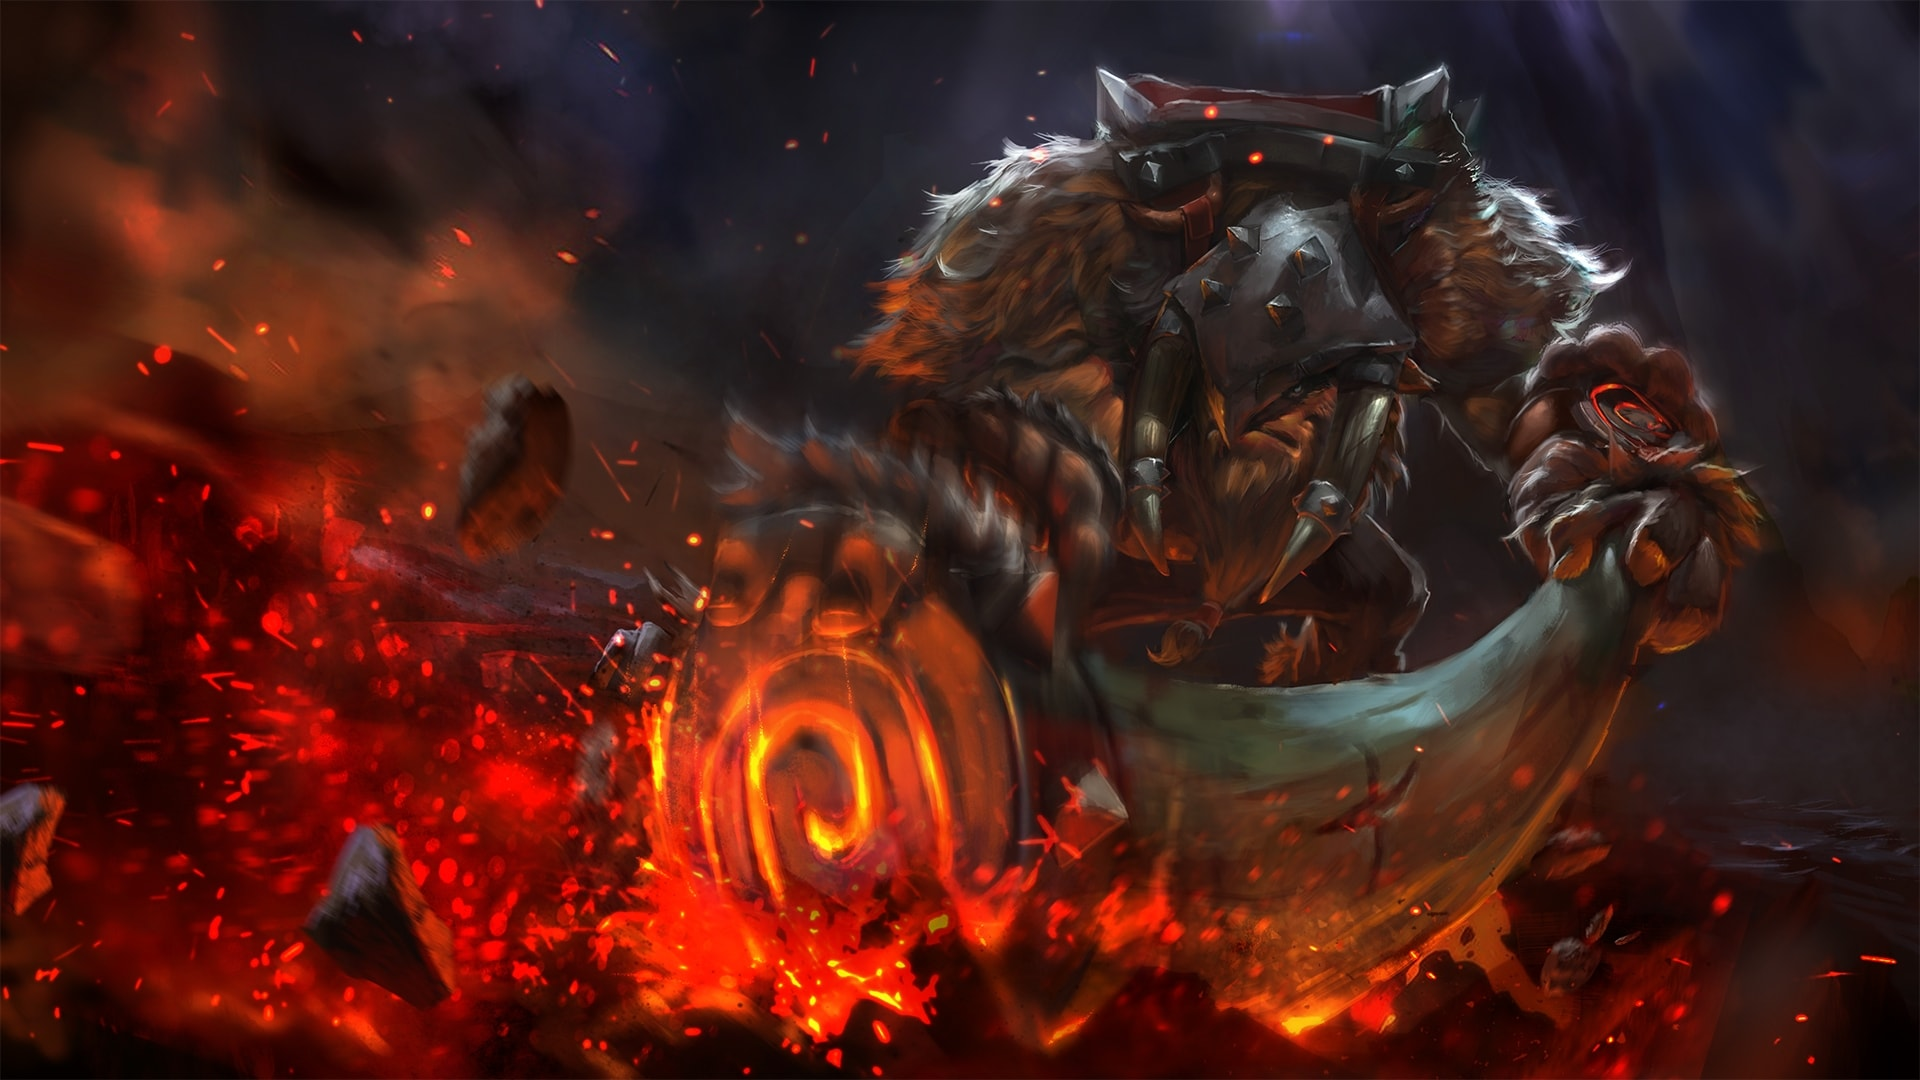 Dota2 Earthshaker Hd Wallpapers 7wallpapers Net